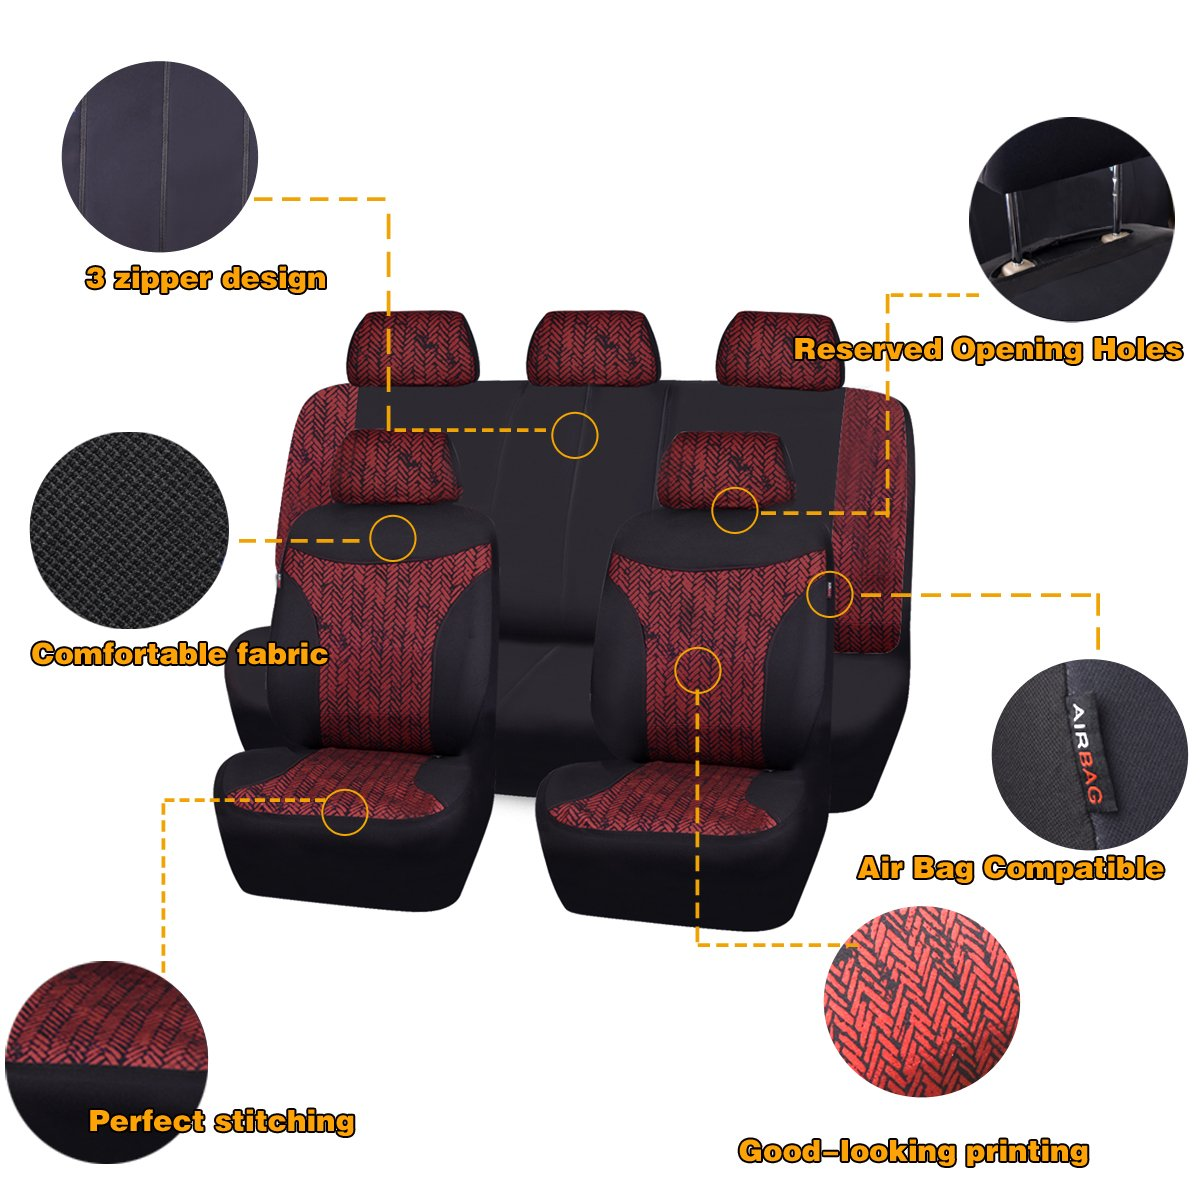 Perfect fit for suvs,sedans,trucks BLACK AND GRAY Airbag Compatible NEW ARRIVAL- CAR PASS Tire Series Universal Car Seat Cover With Reserved Opening Holes for headrest covers and selt belts